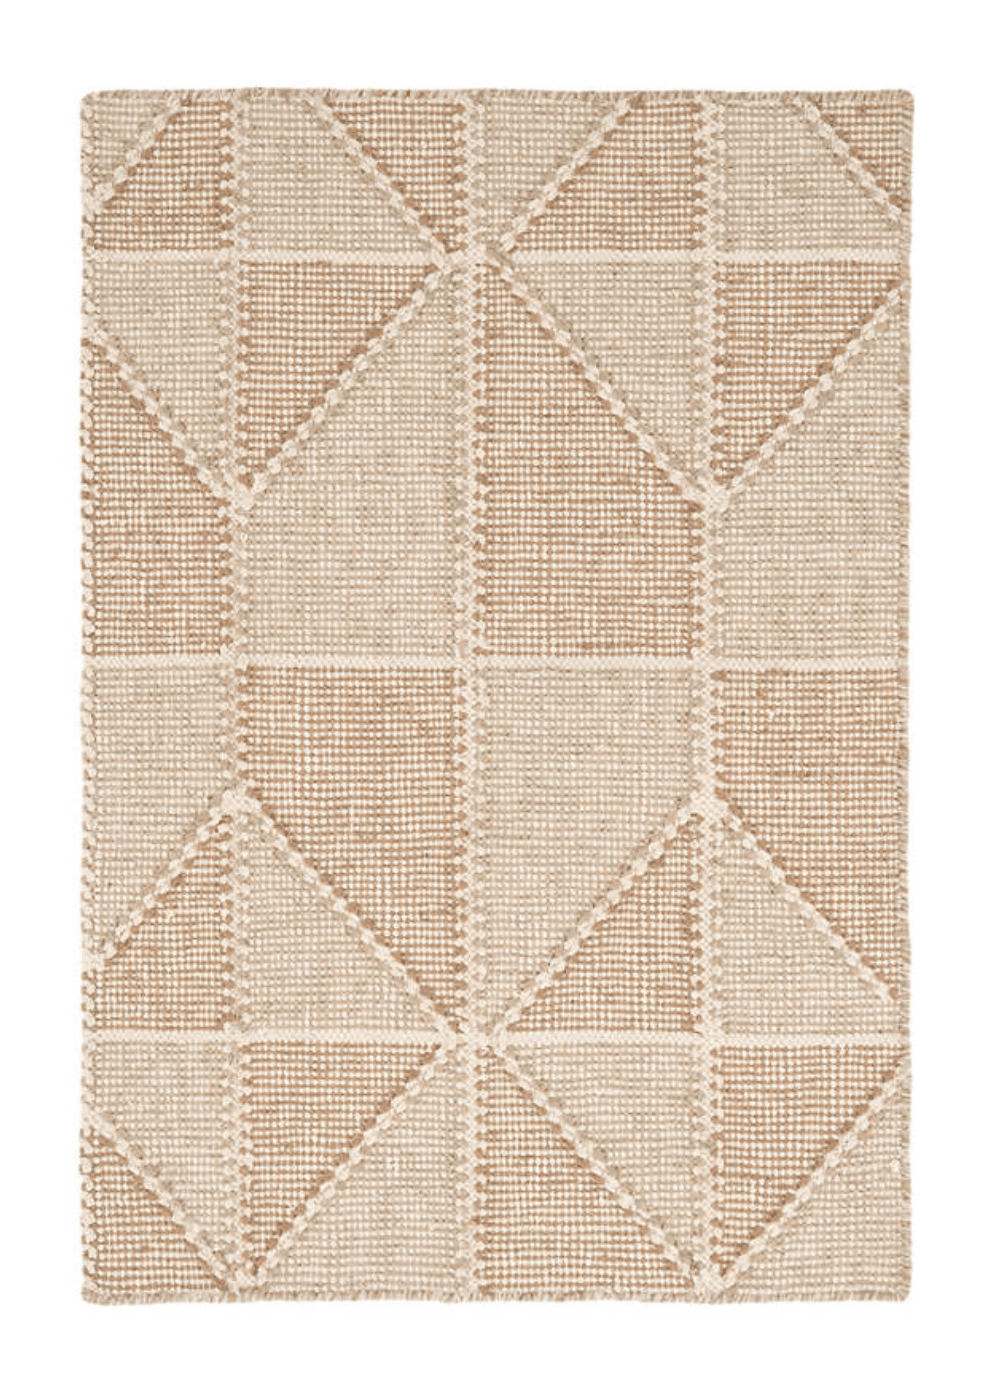 A wheat-colored woven rug